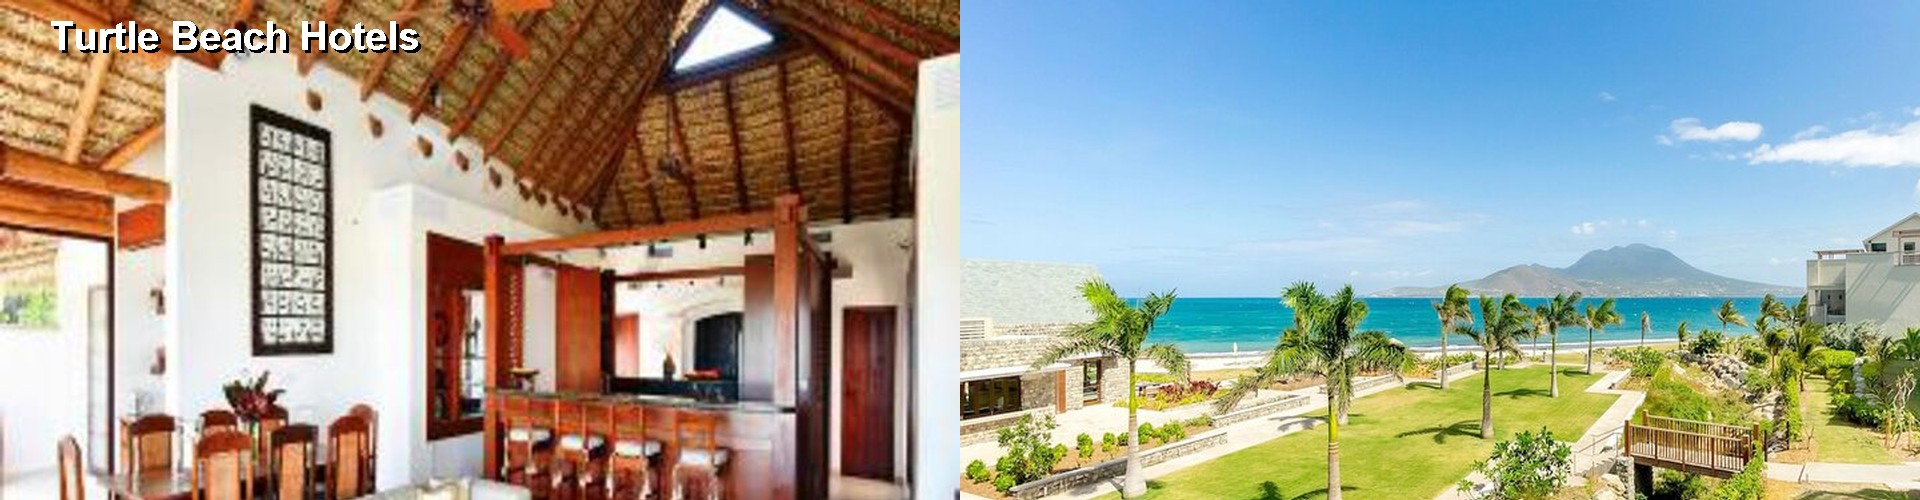 5 Best Hotels near Turtle Beach